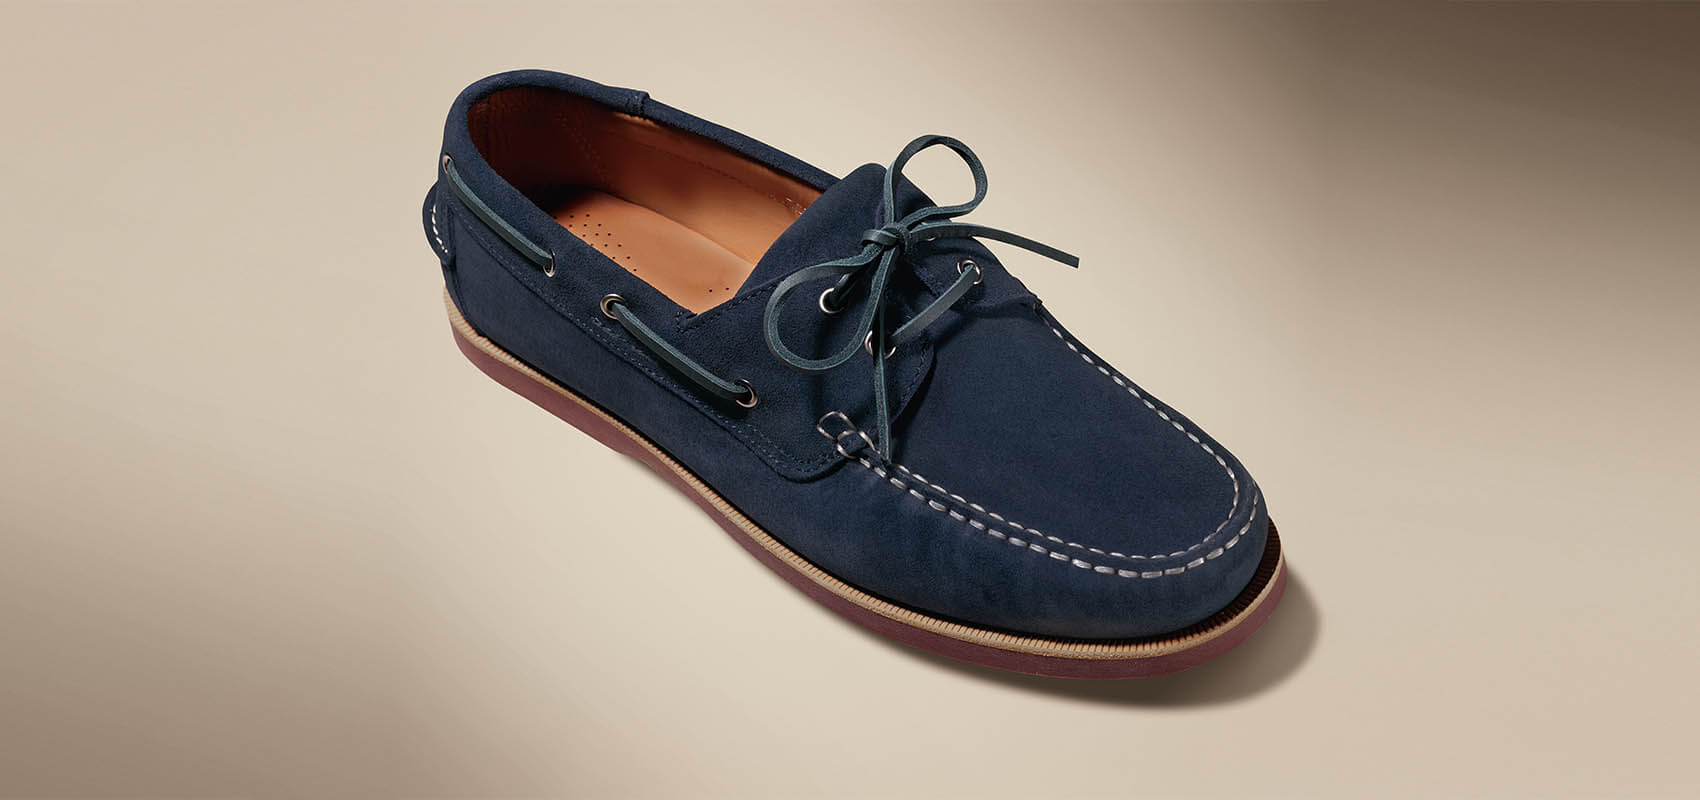 Charles Tyrwhitt Boat Shoes